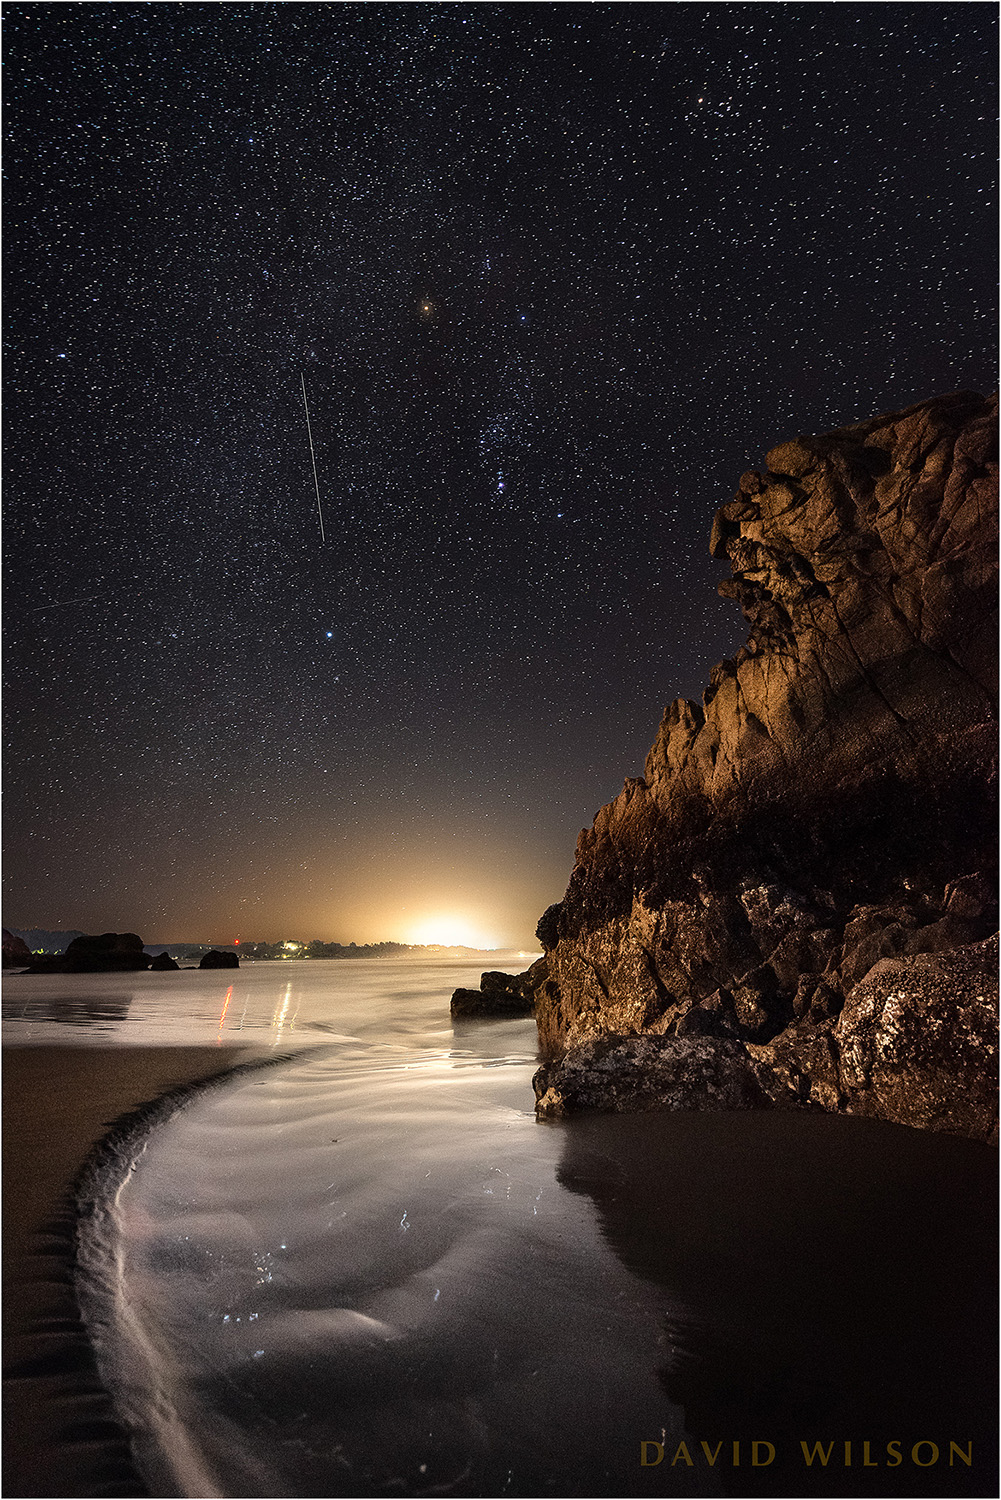 Lights from shore illuminate this great chunk of rock here where the wild coastline intersects with humanity, while above a satellite, an eye in the sky so high, crawled slowly past Orion. Humboldt County, California. February 22, 2019.